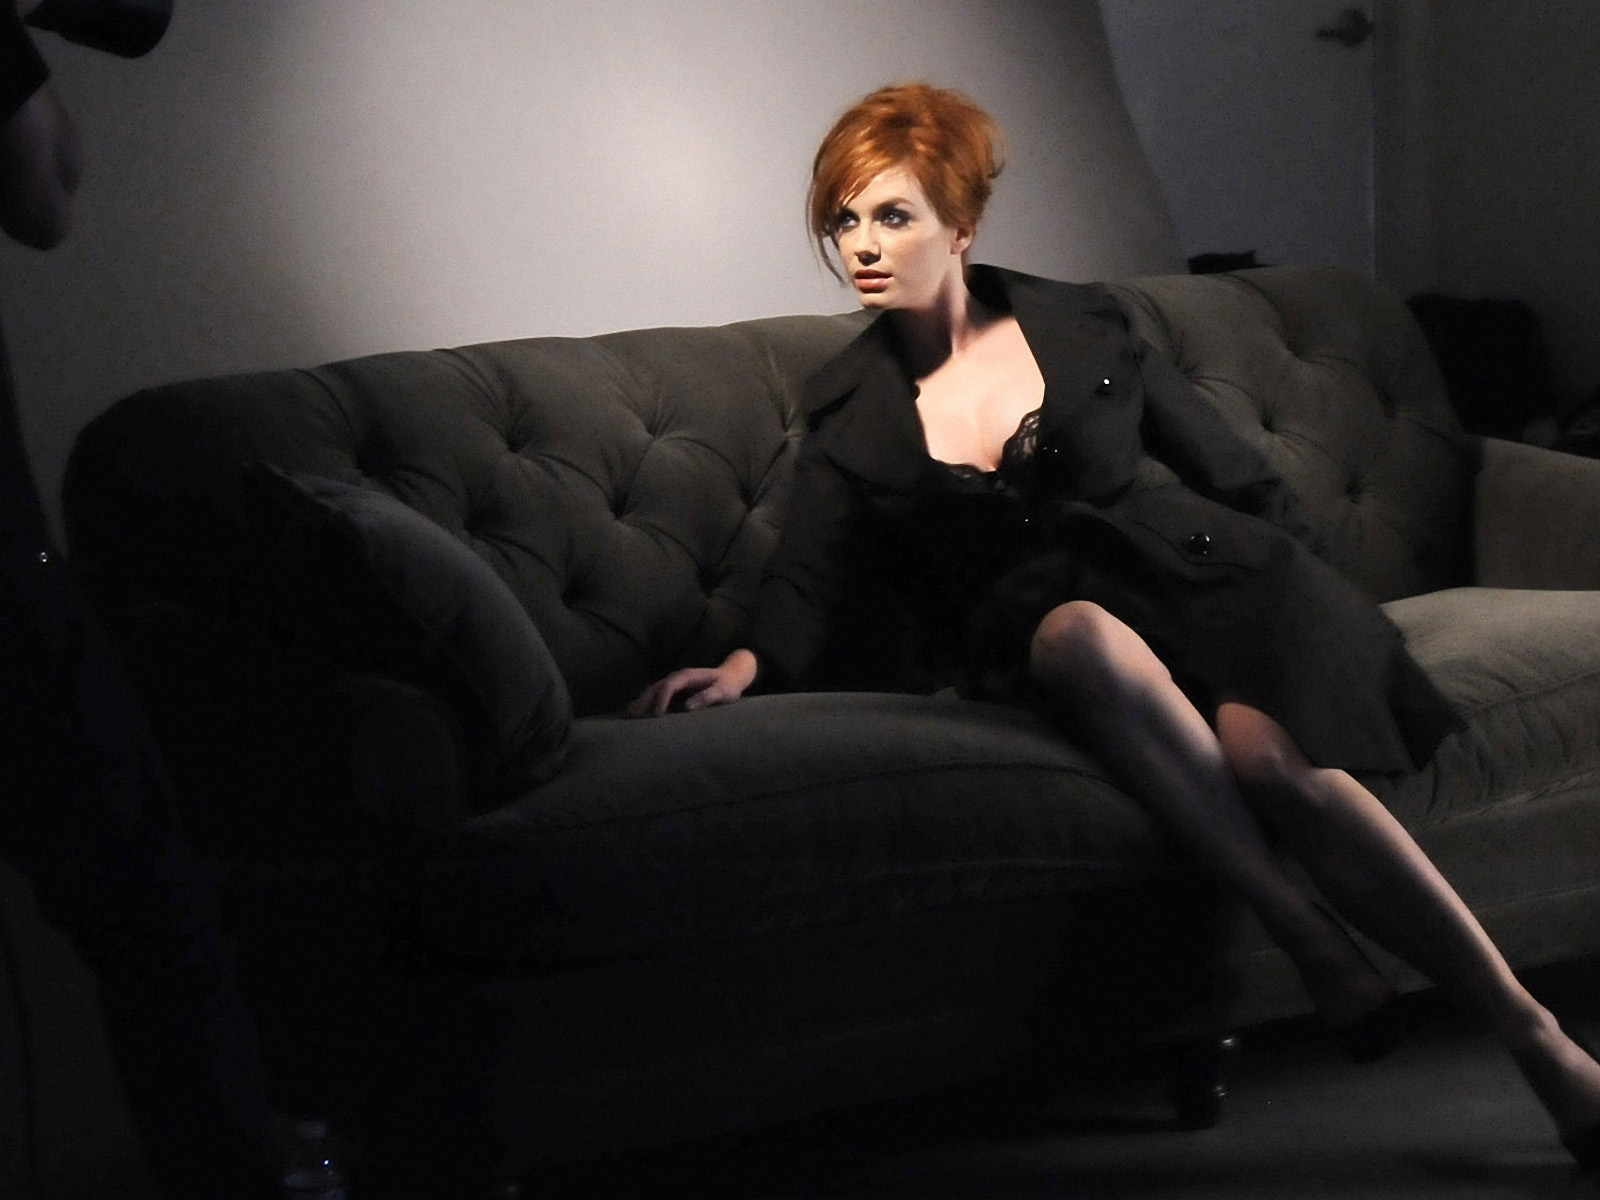 christina-hendricks-legs